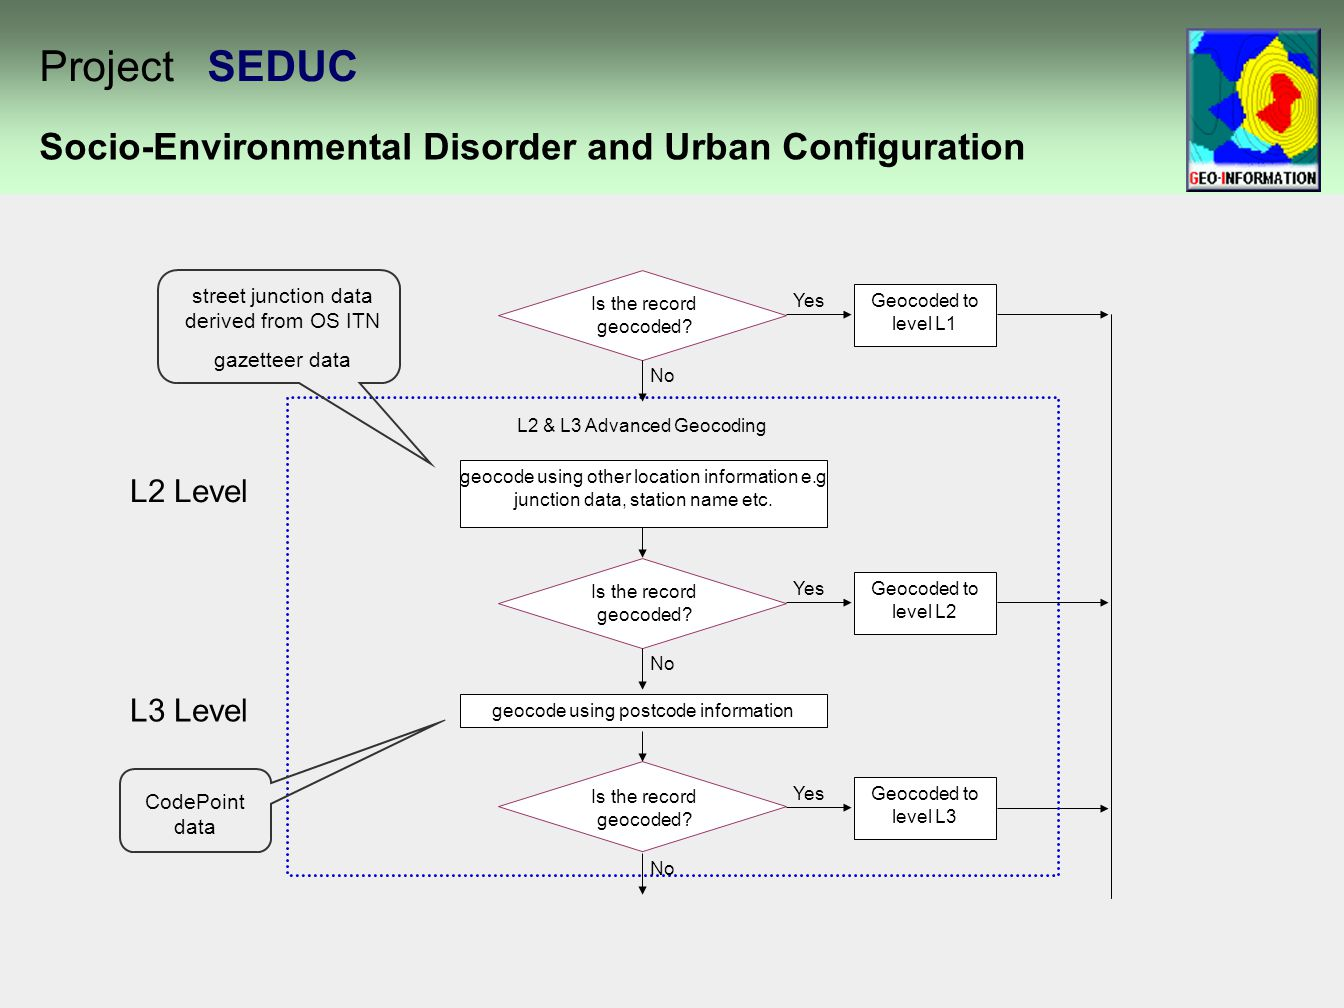 Socio-Environmental Disorder and Urban Configuration Project SEDUC geocode using other location information e.g junction data, station name etc.